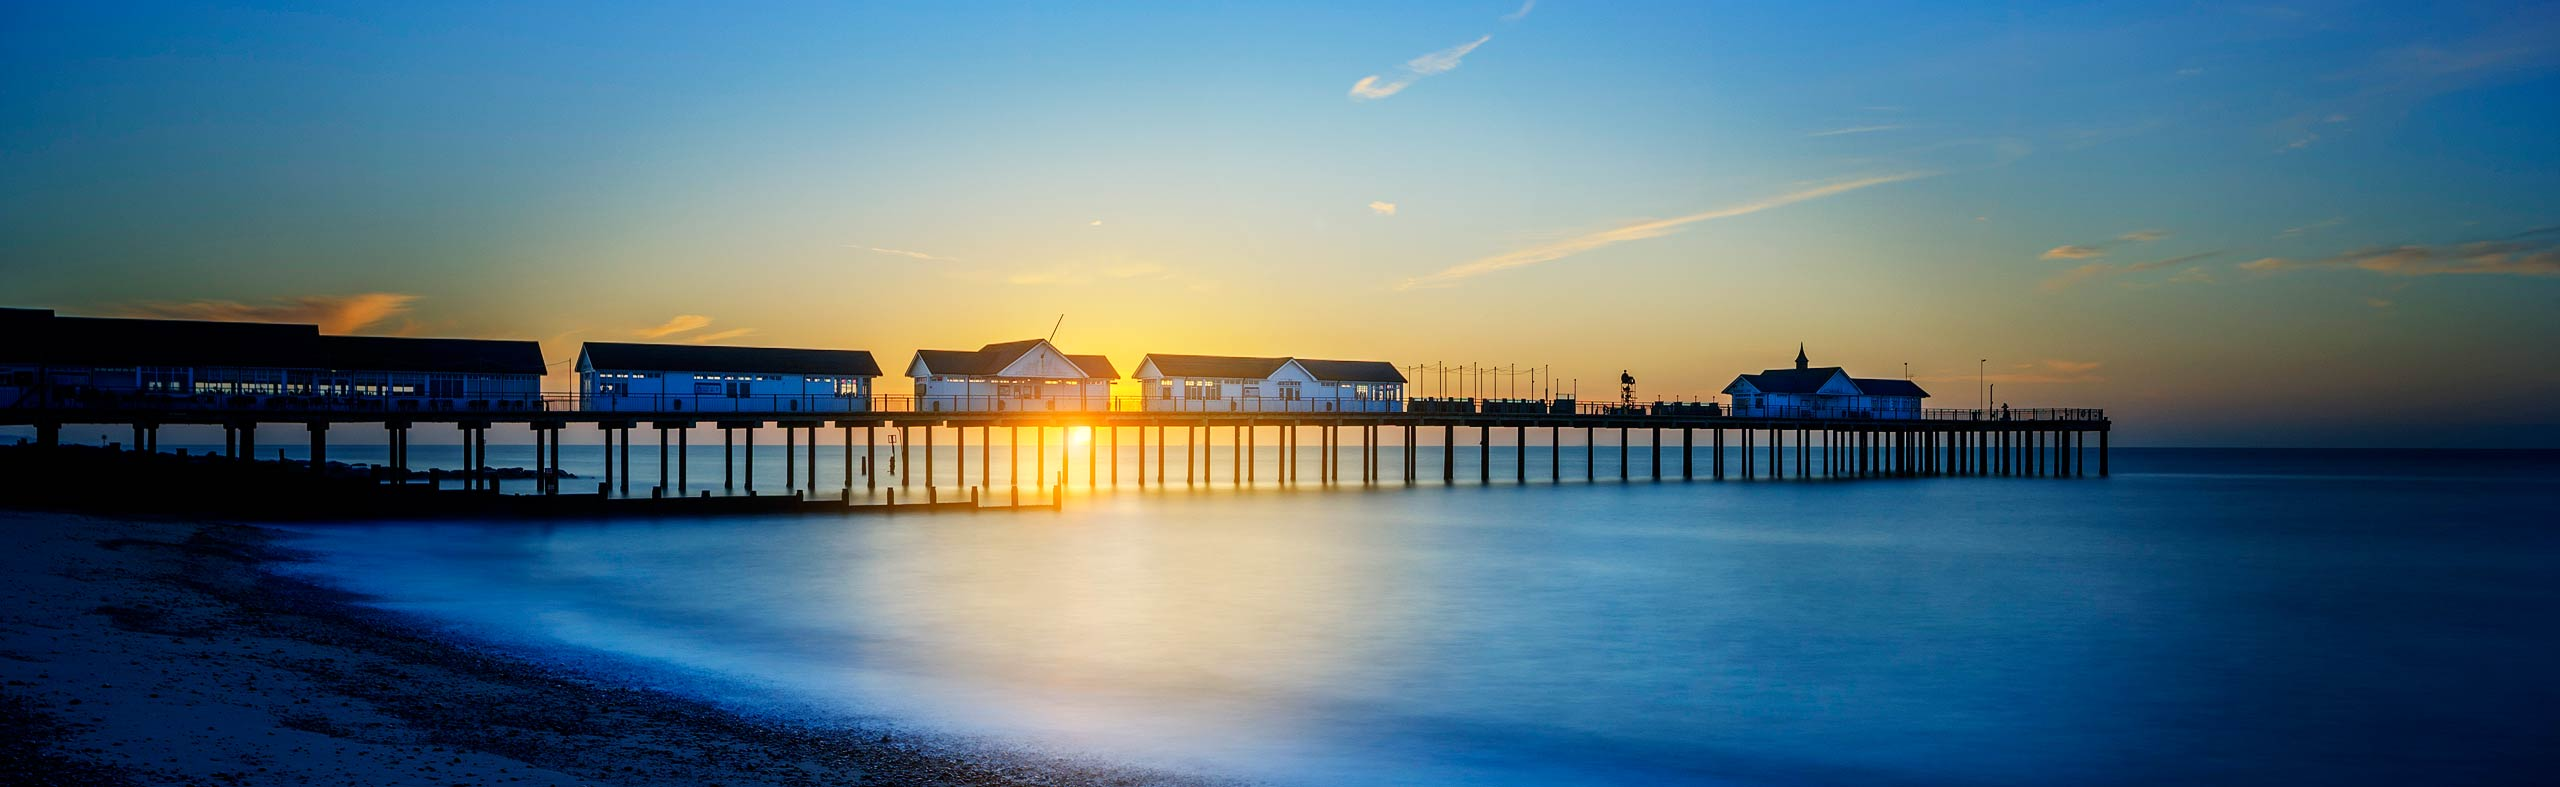 FCR-482234 | UK/England, Southwold | © Chris Warren/SIME